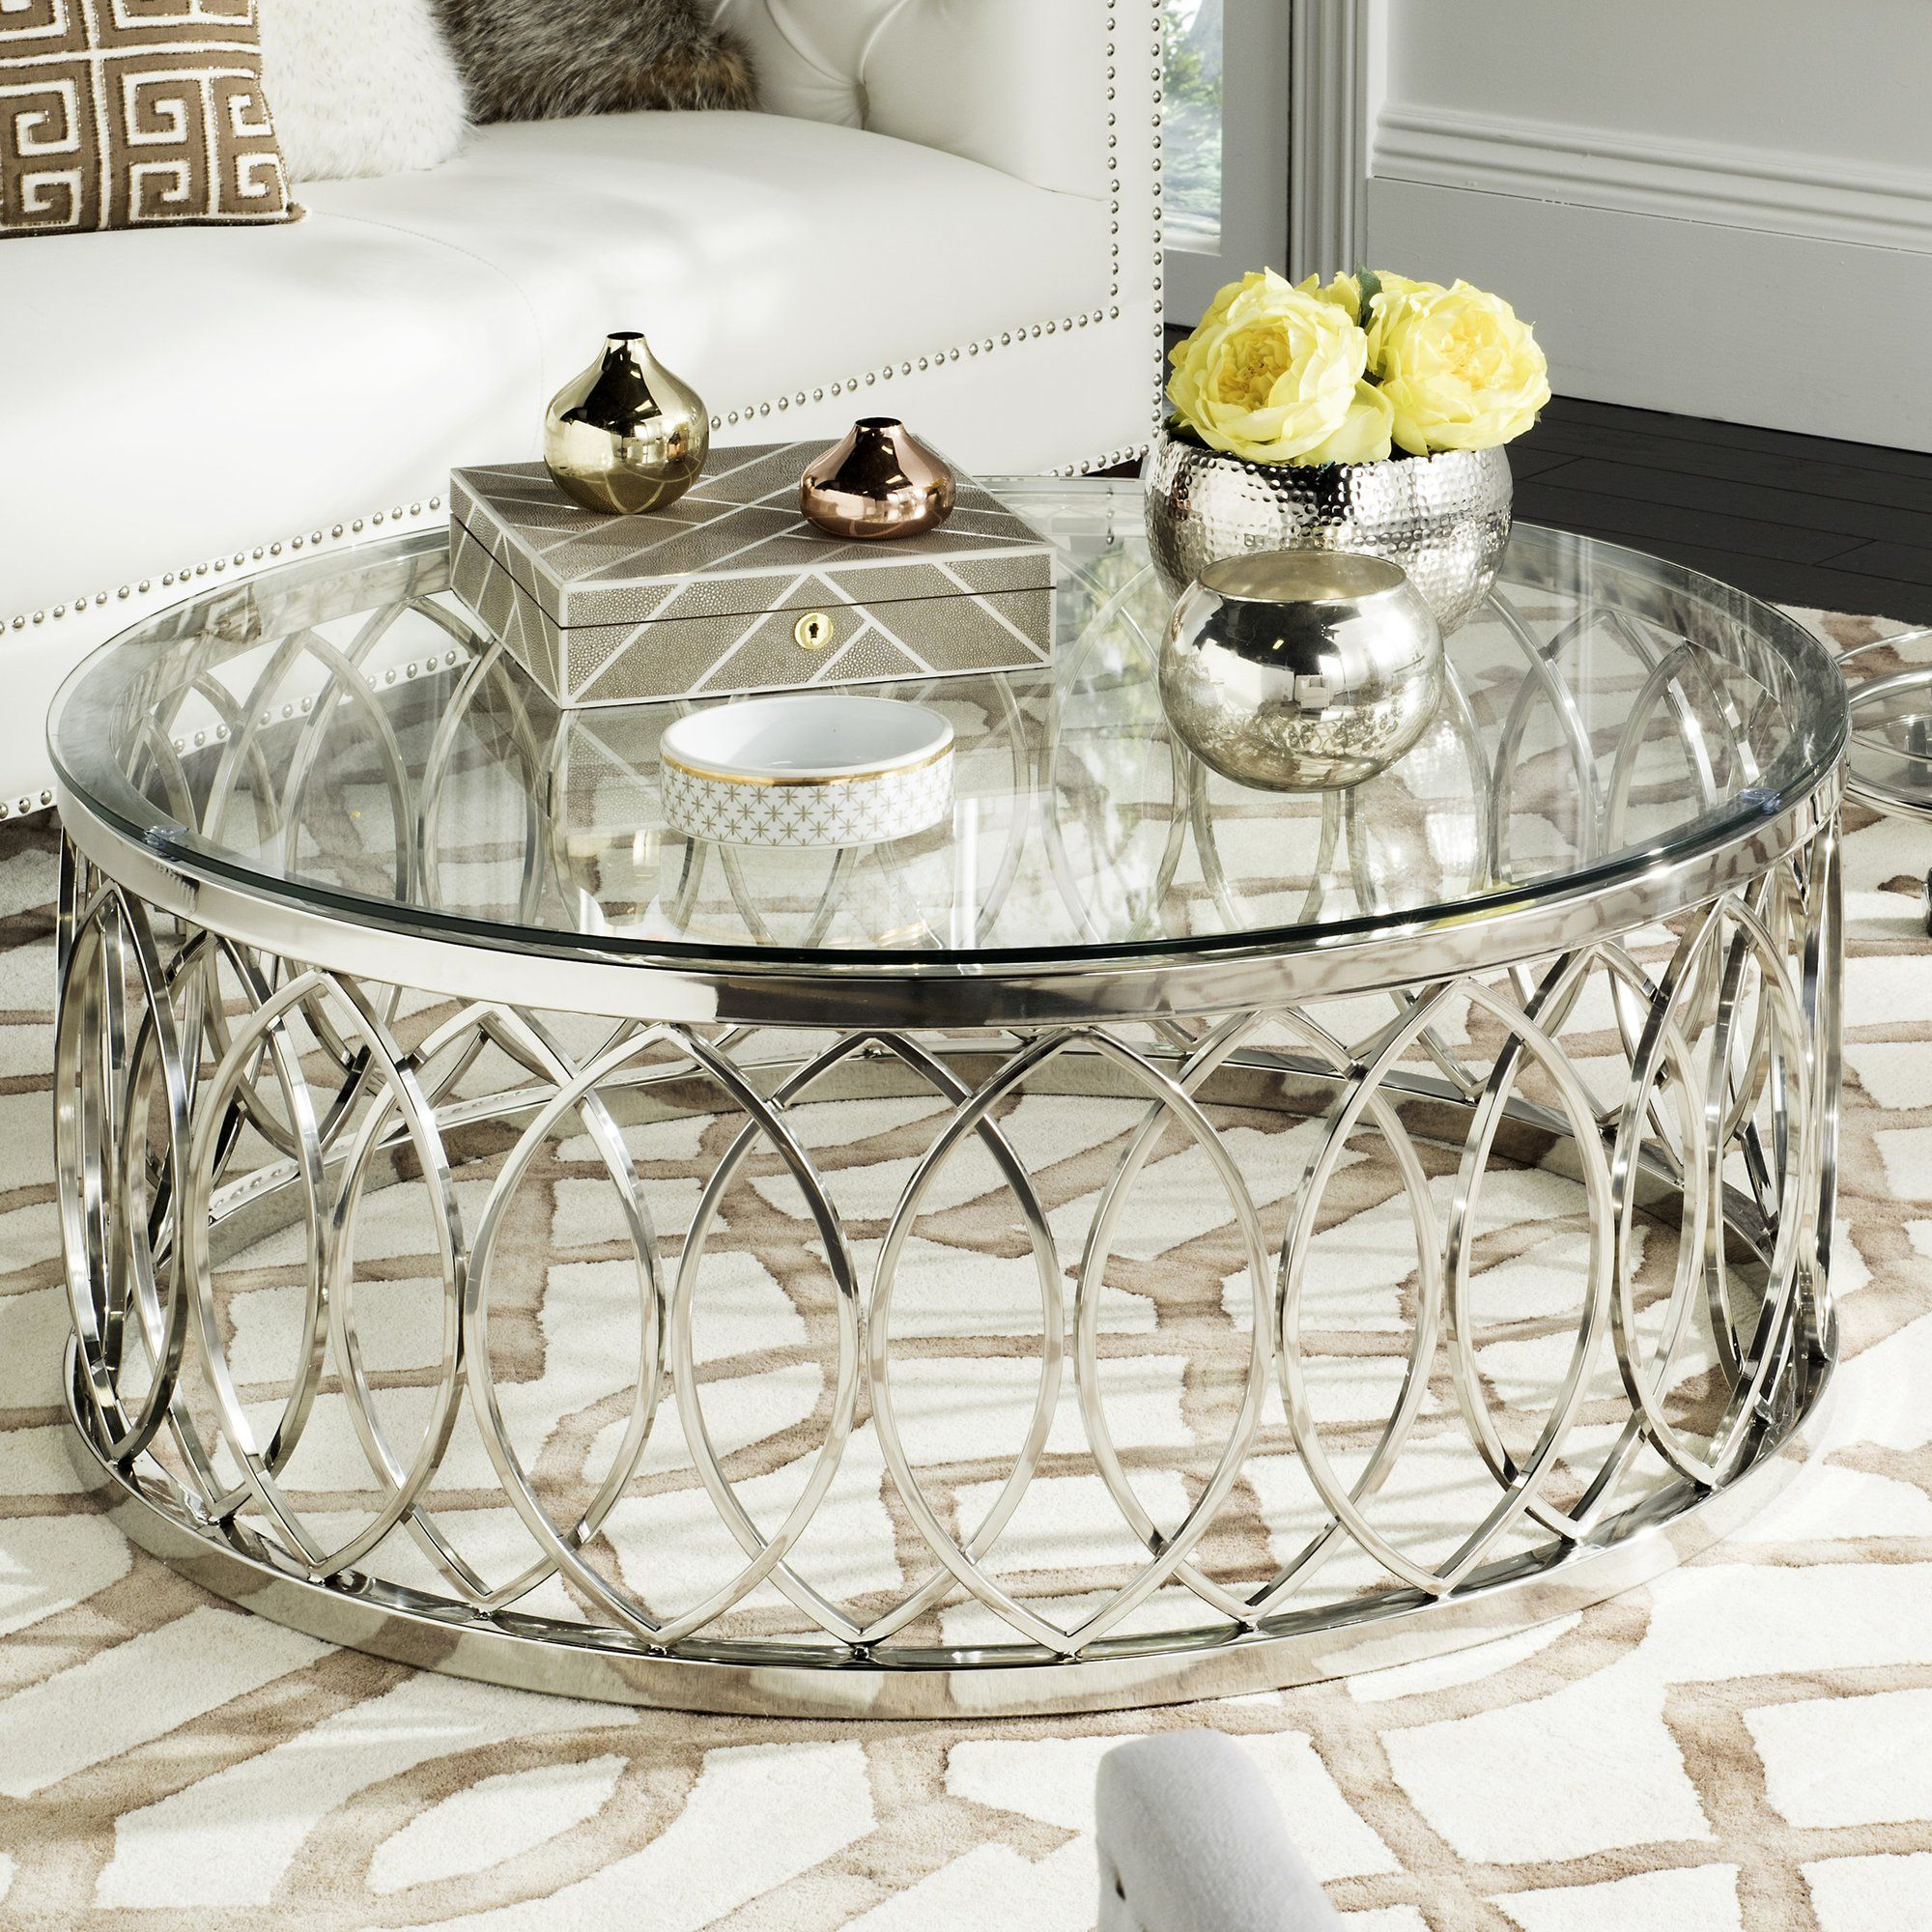 Coleman Coffee Table Coffe Table Decor Center Table Living Room Living Room Table [ 2000 x 2000 Pixel ]